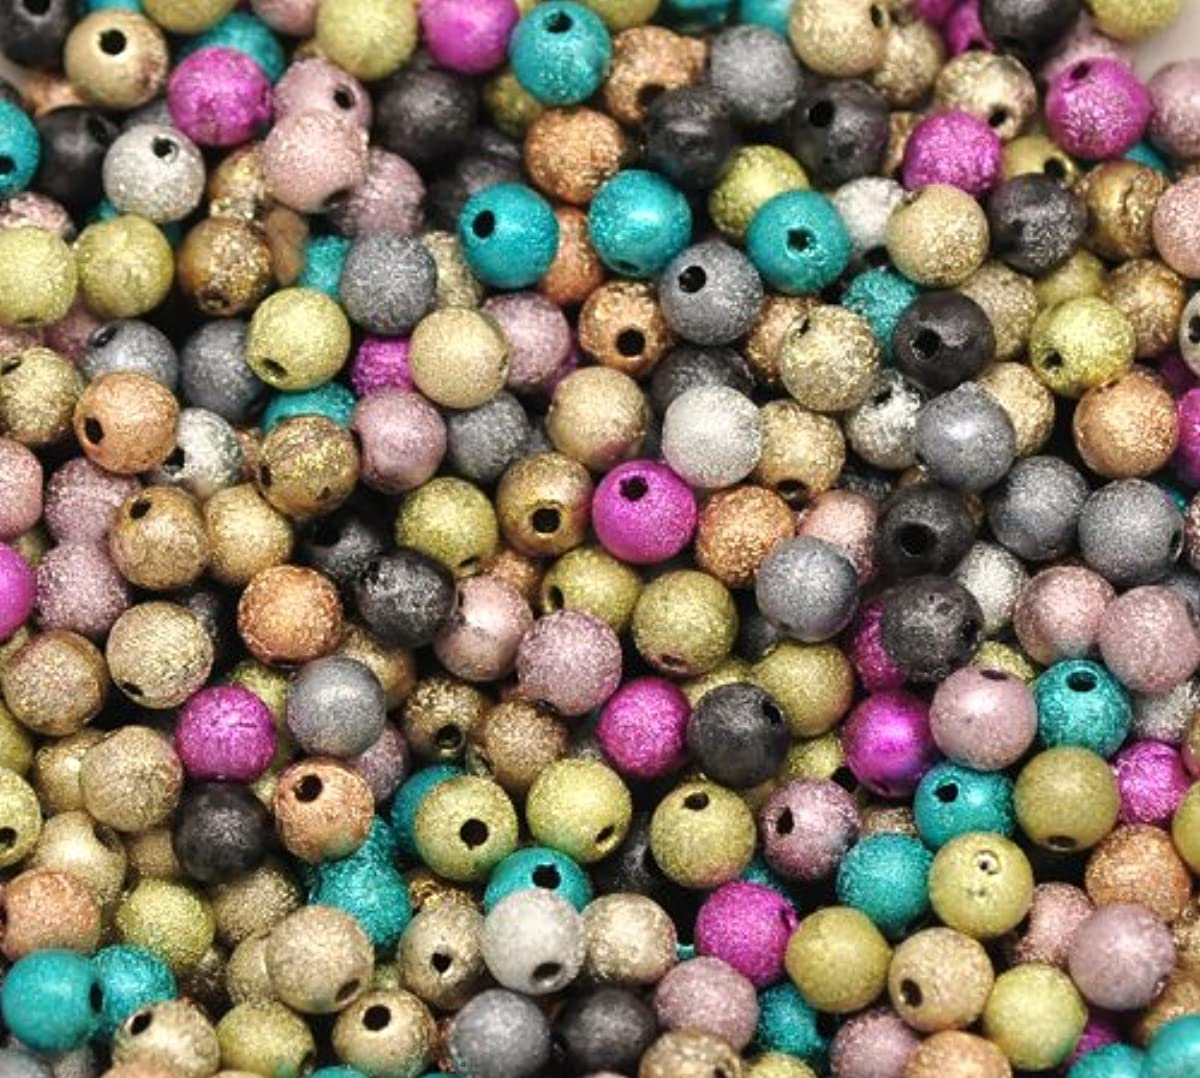 PEPPERLONELY 500PC Mixed Stardust Acrylic Spacer Beads 6mm(1/4